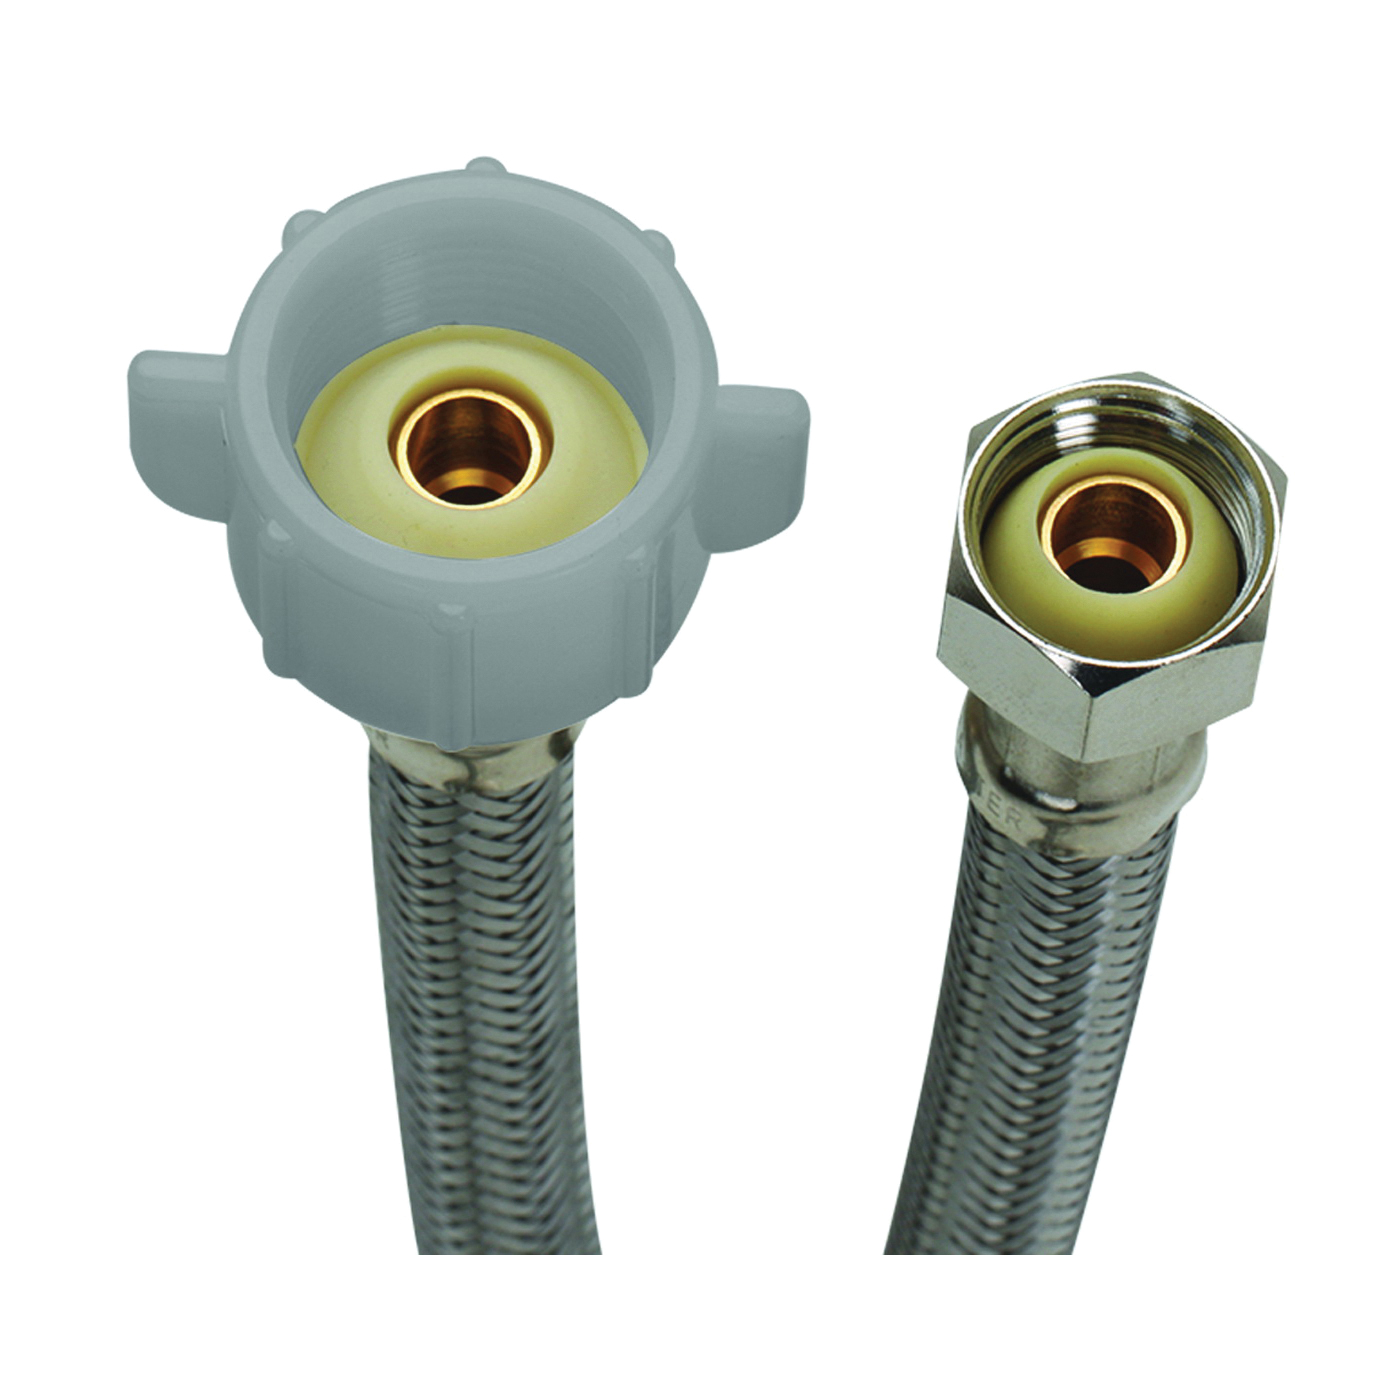 Picture of FLUIDMASTER B3T09 Toilet Connector, 1/2 in Inlet, Compression Inlet, 7/8 in Outlet, Ballcock Outlet, 9 in L